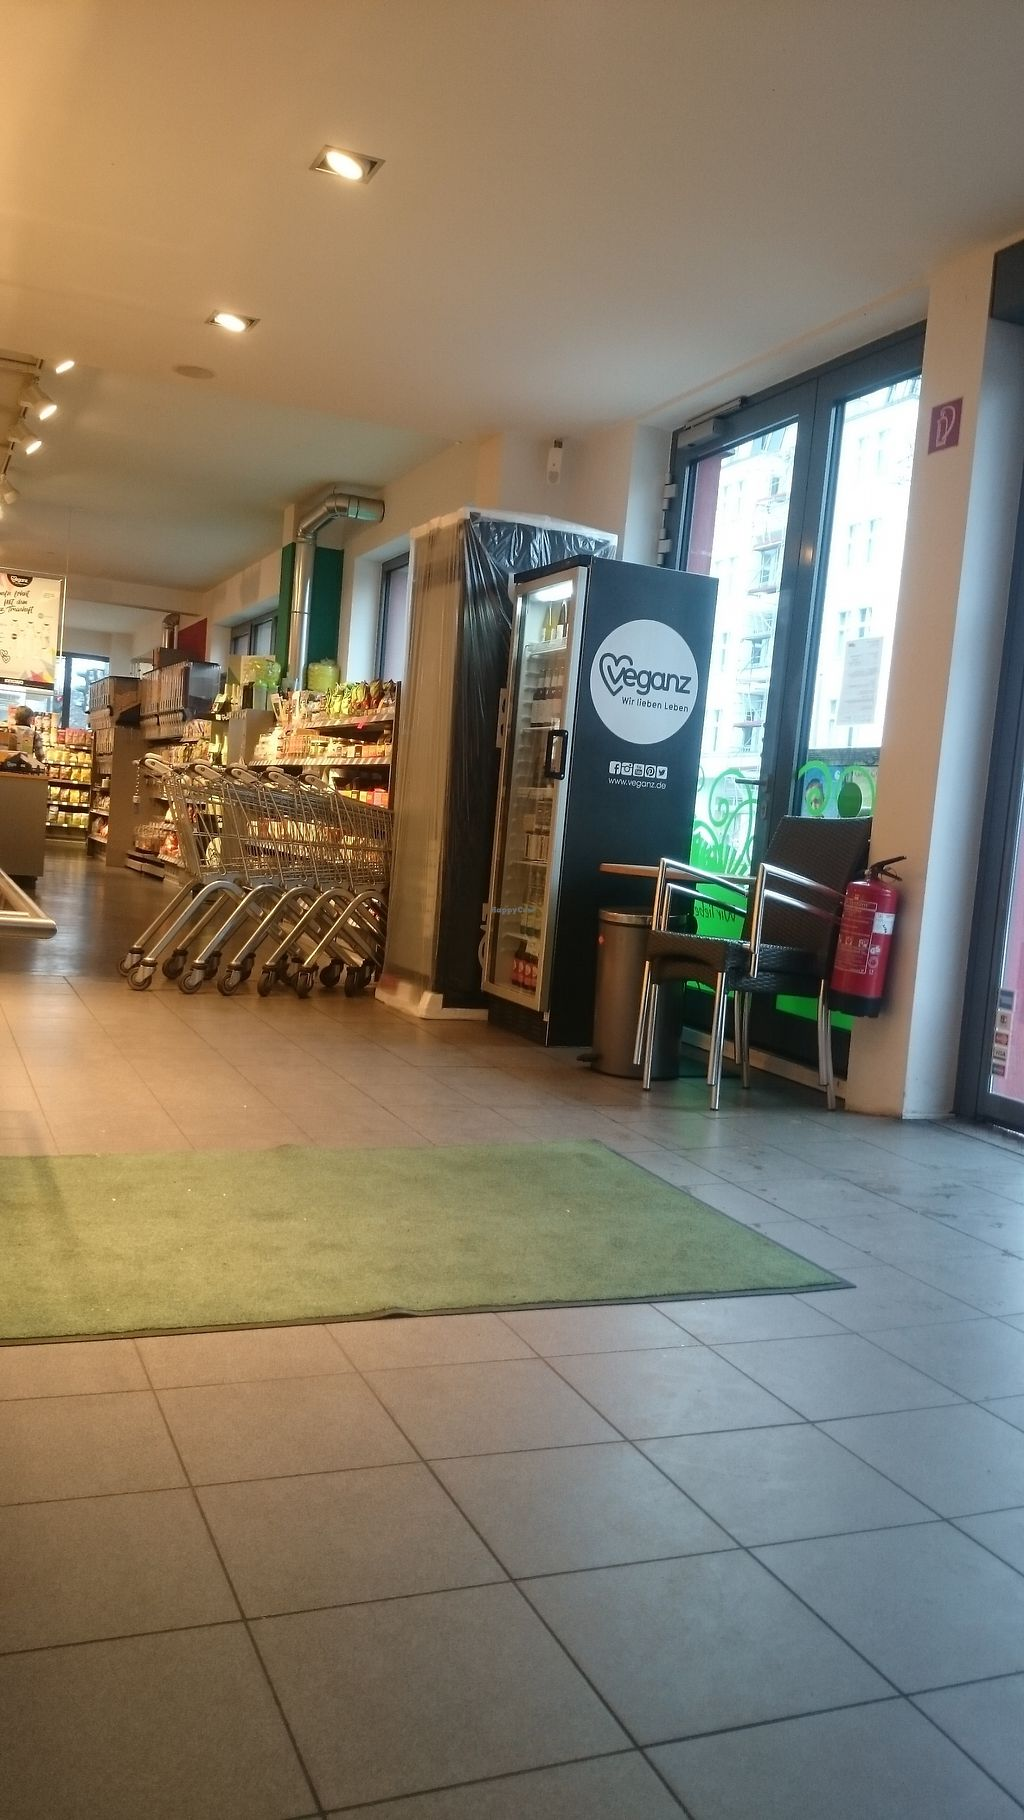 """Photo of Veganz - Schivelbeiner Strasse  by <a href=""""/members/profile/chb-pbfp"""">chb-pbfp</a> <br/>Inside <br/> April 4, 2018  - <a href='/contact/abuse/image/27300/380705'>Report</a>"""